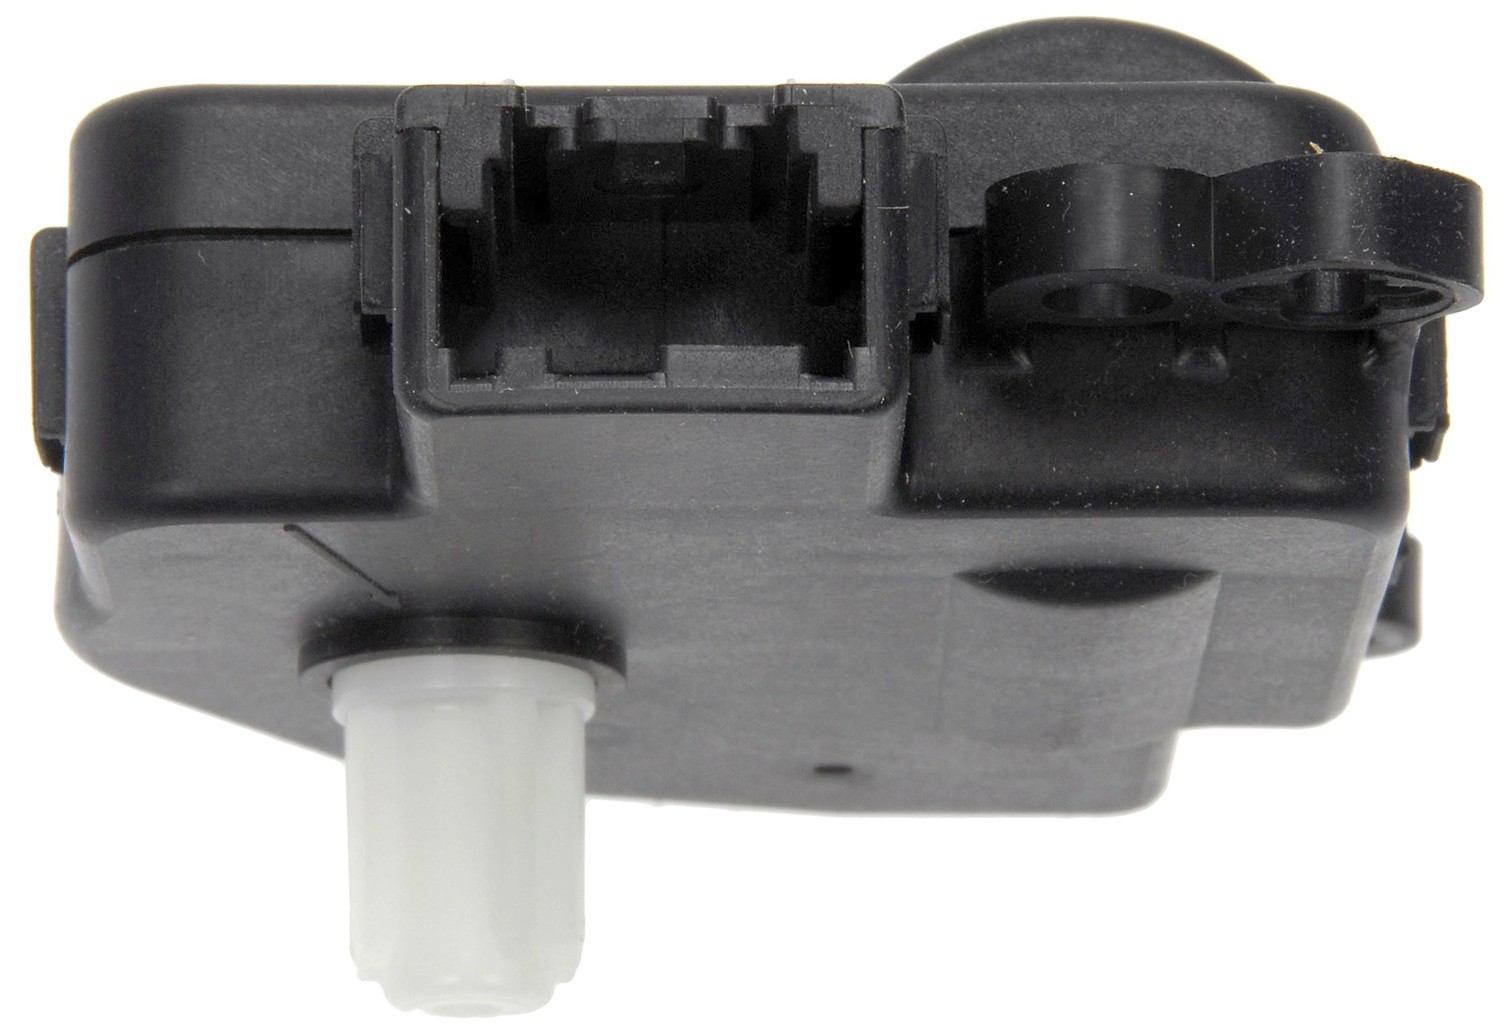 DORMAN OE SOLUTIONS - HVAC Heater Blend Door Actuator - DRE 604-154